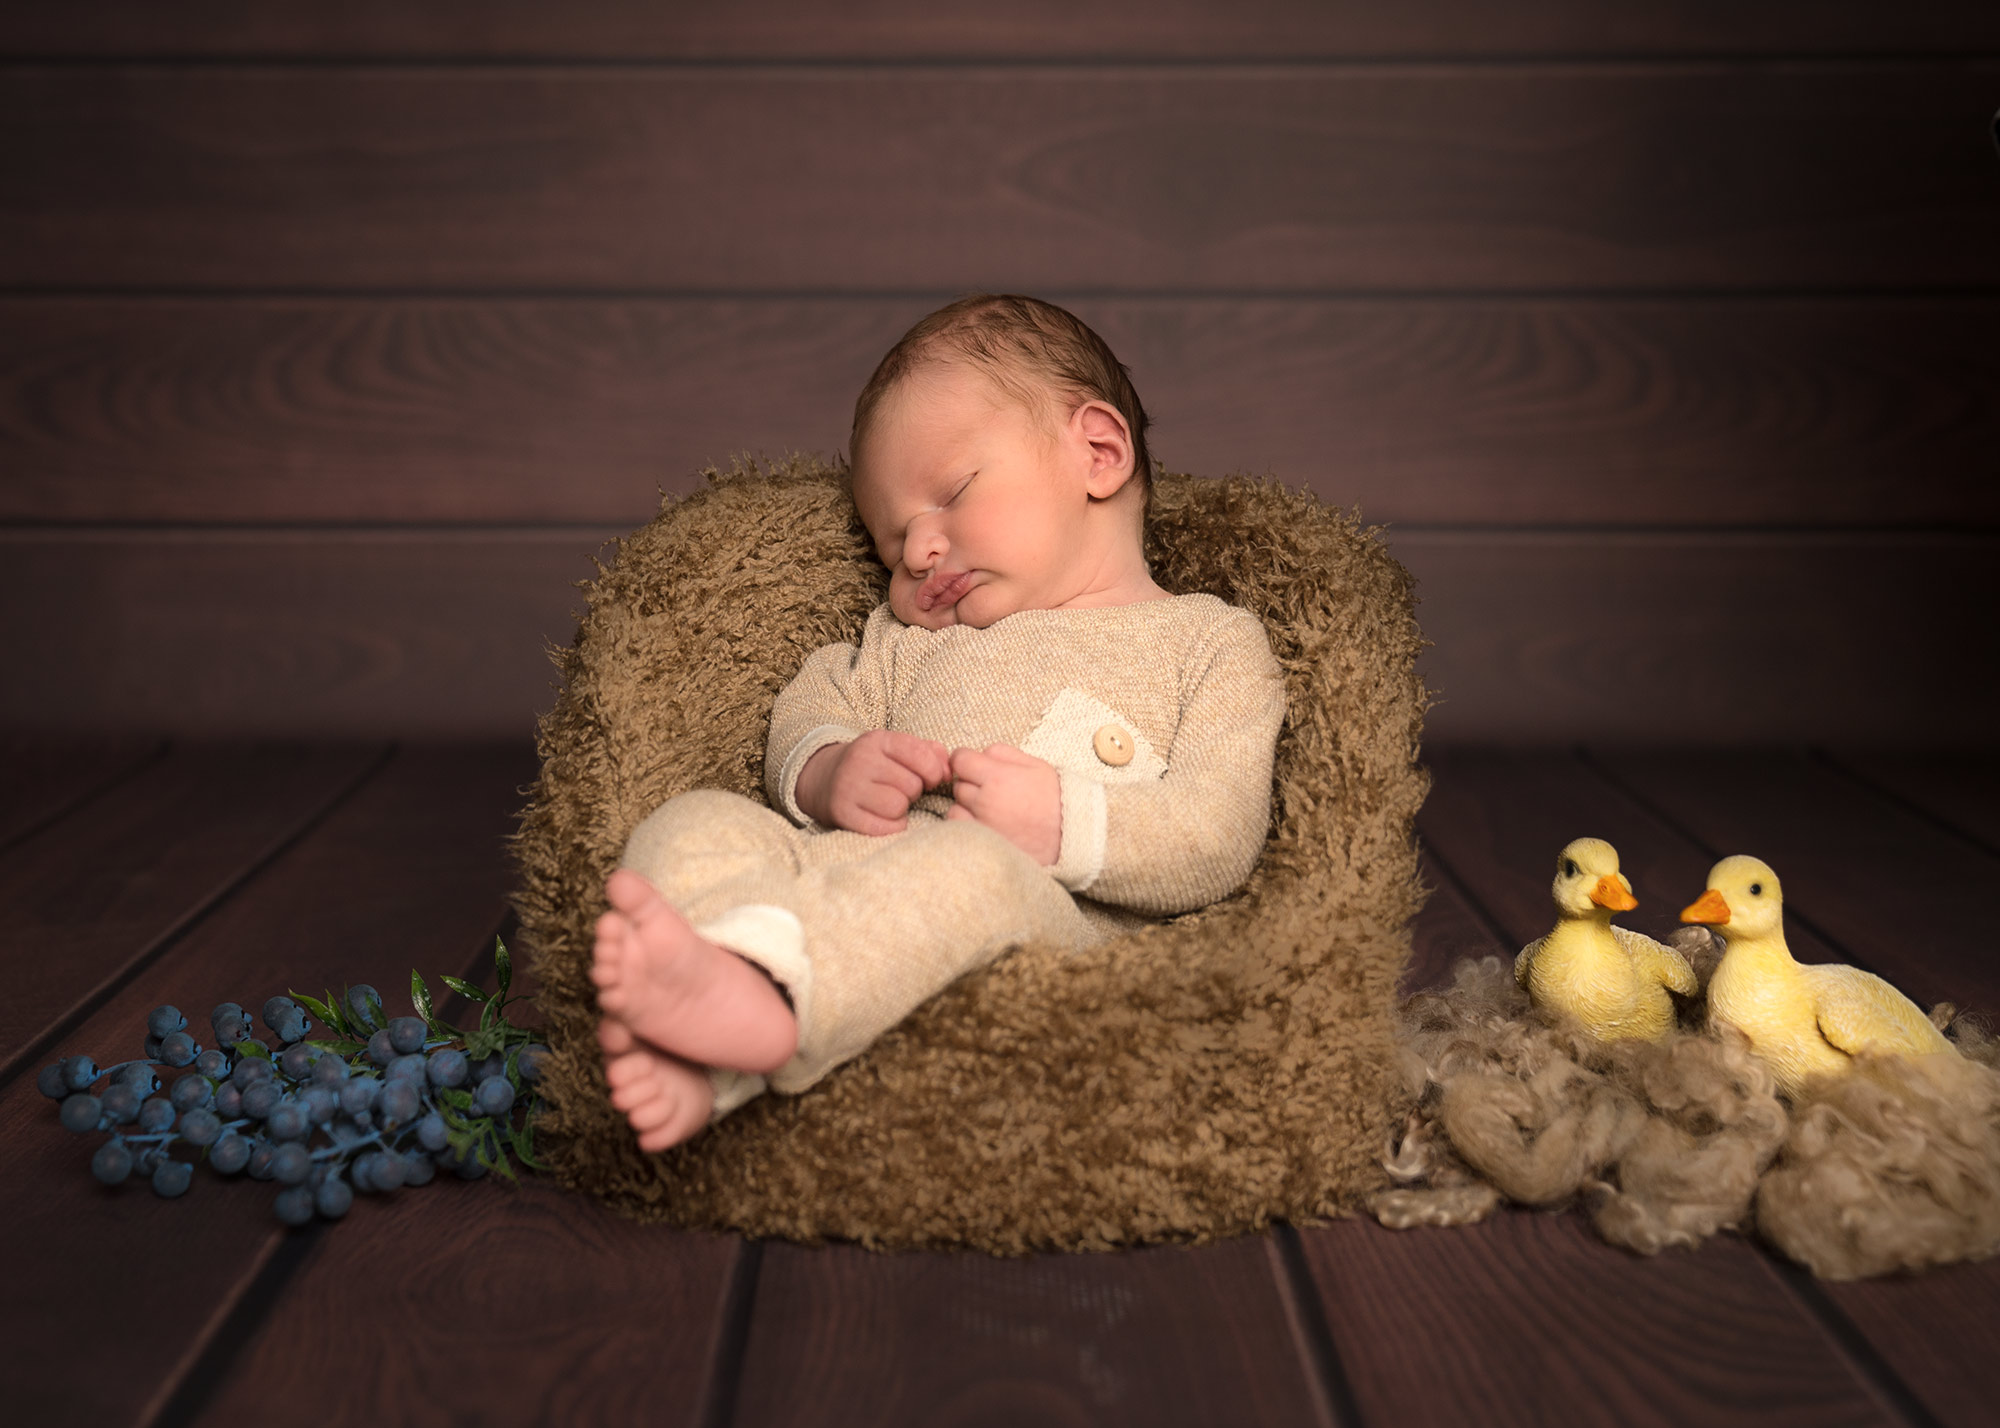 Babyshooting im Sessel mit Enten